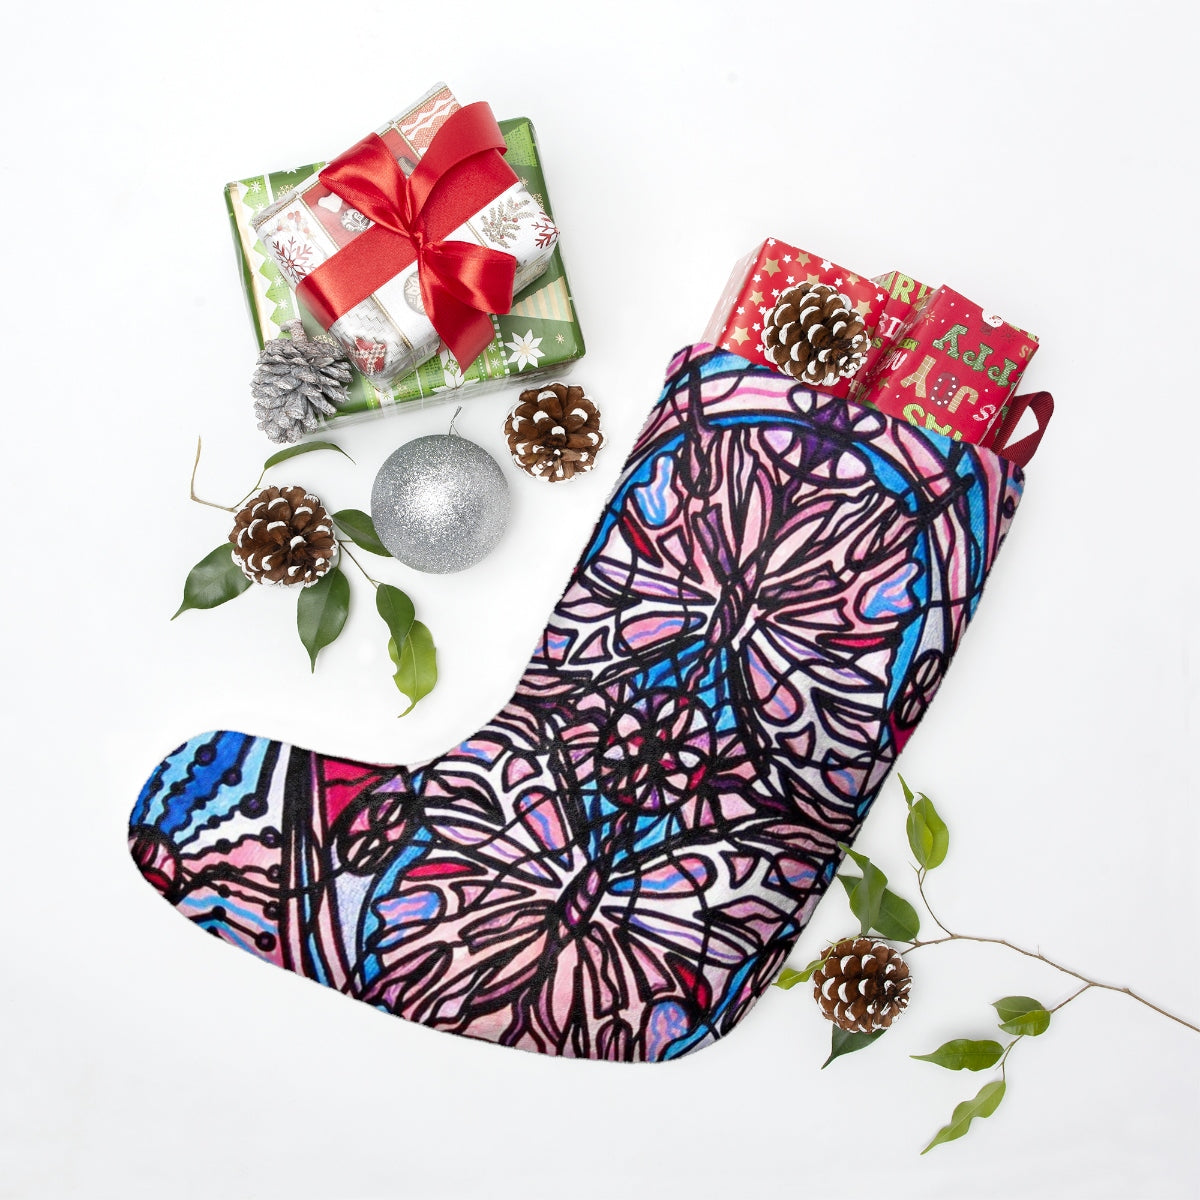 Conceive - Christmas Stockings